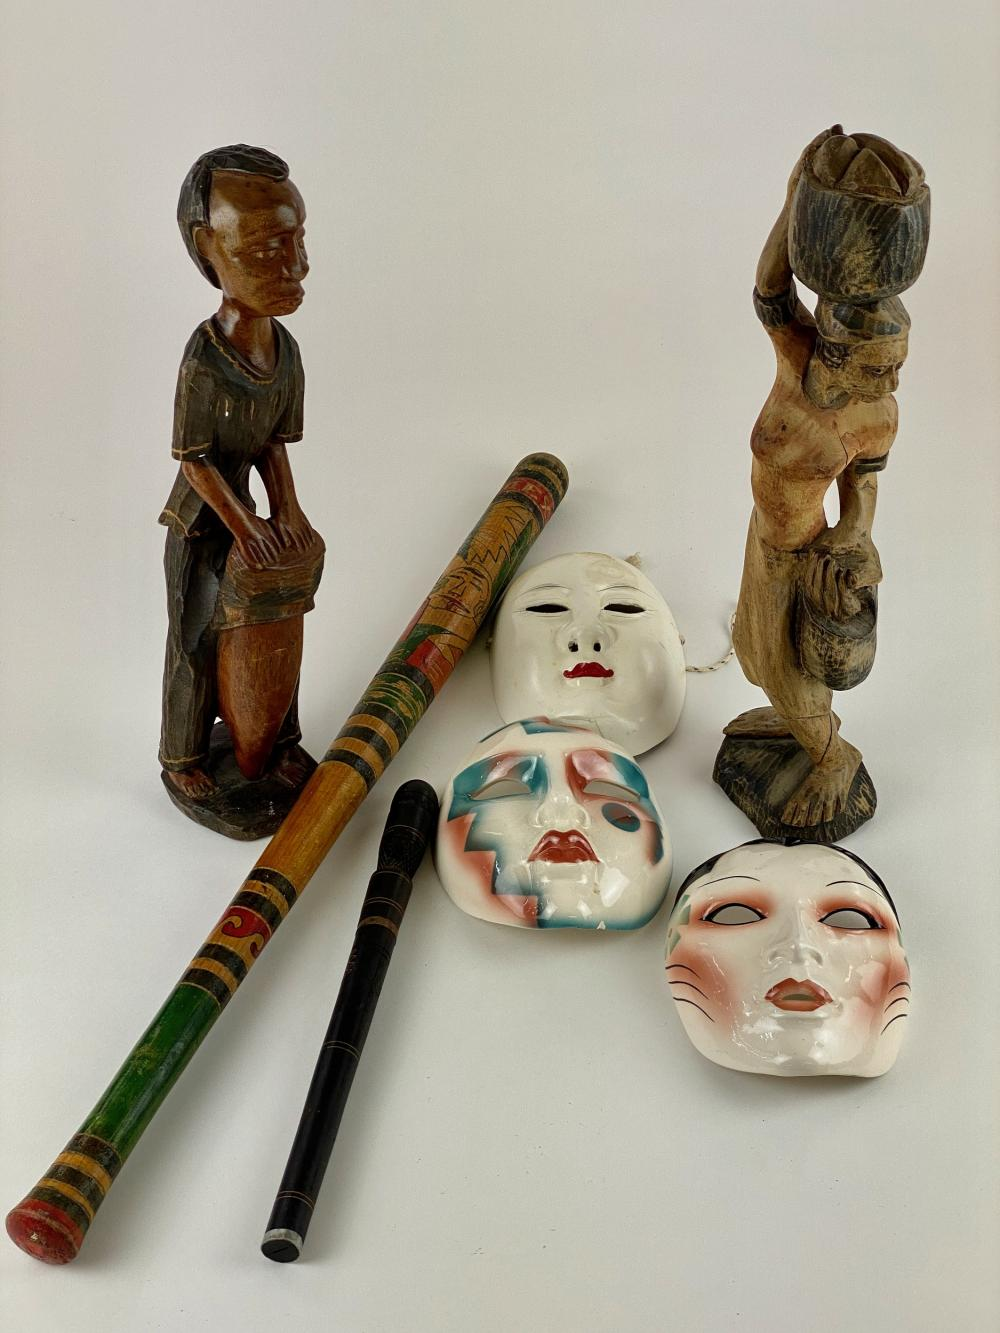 Collection of Carvings, Masks, Bat, Knife